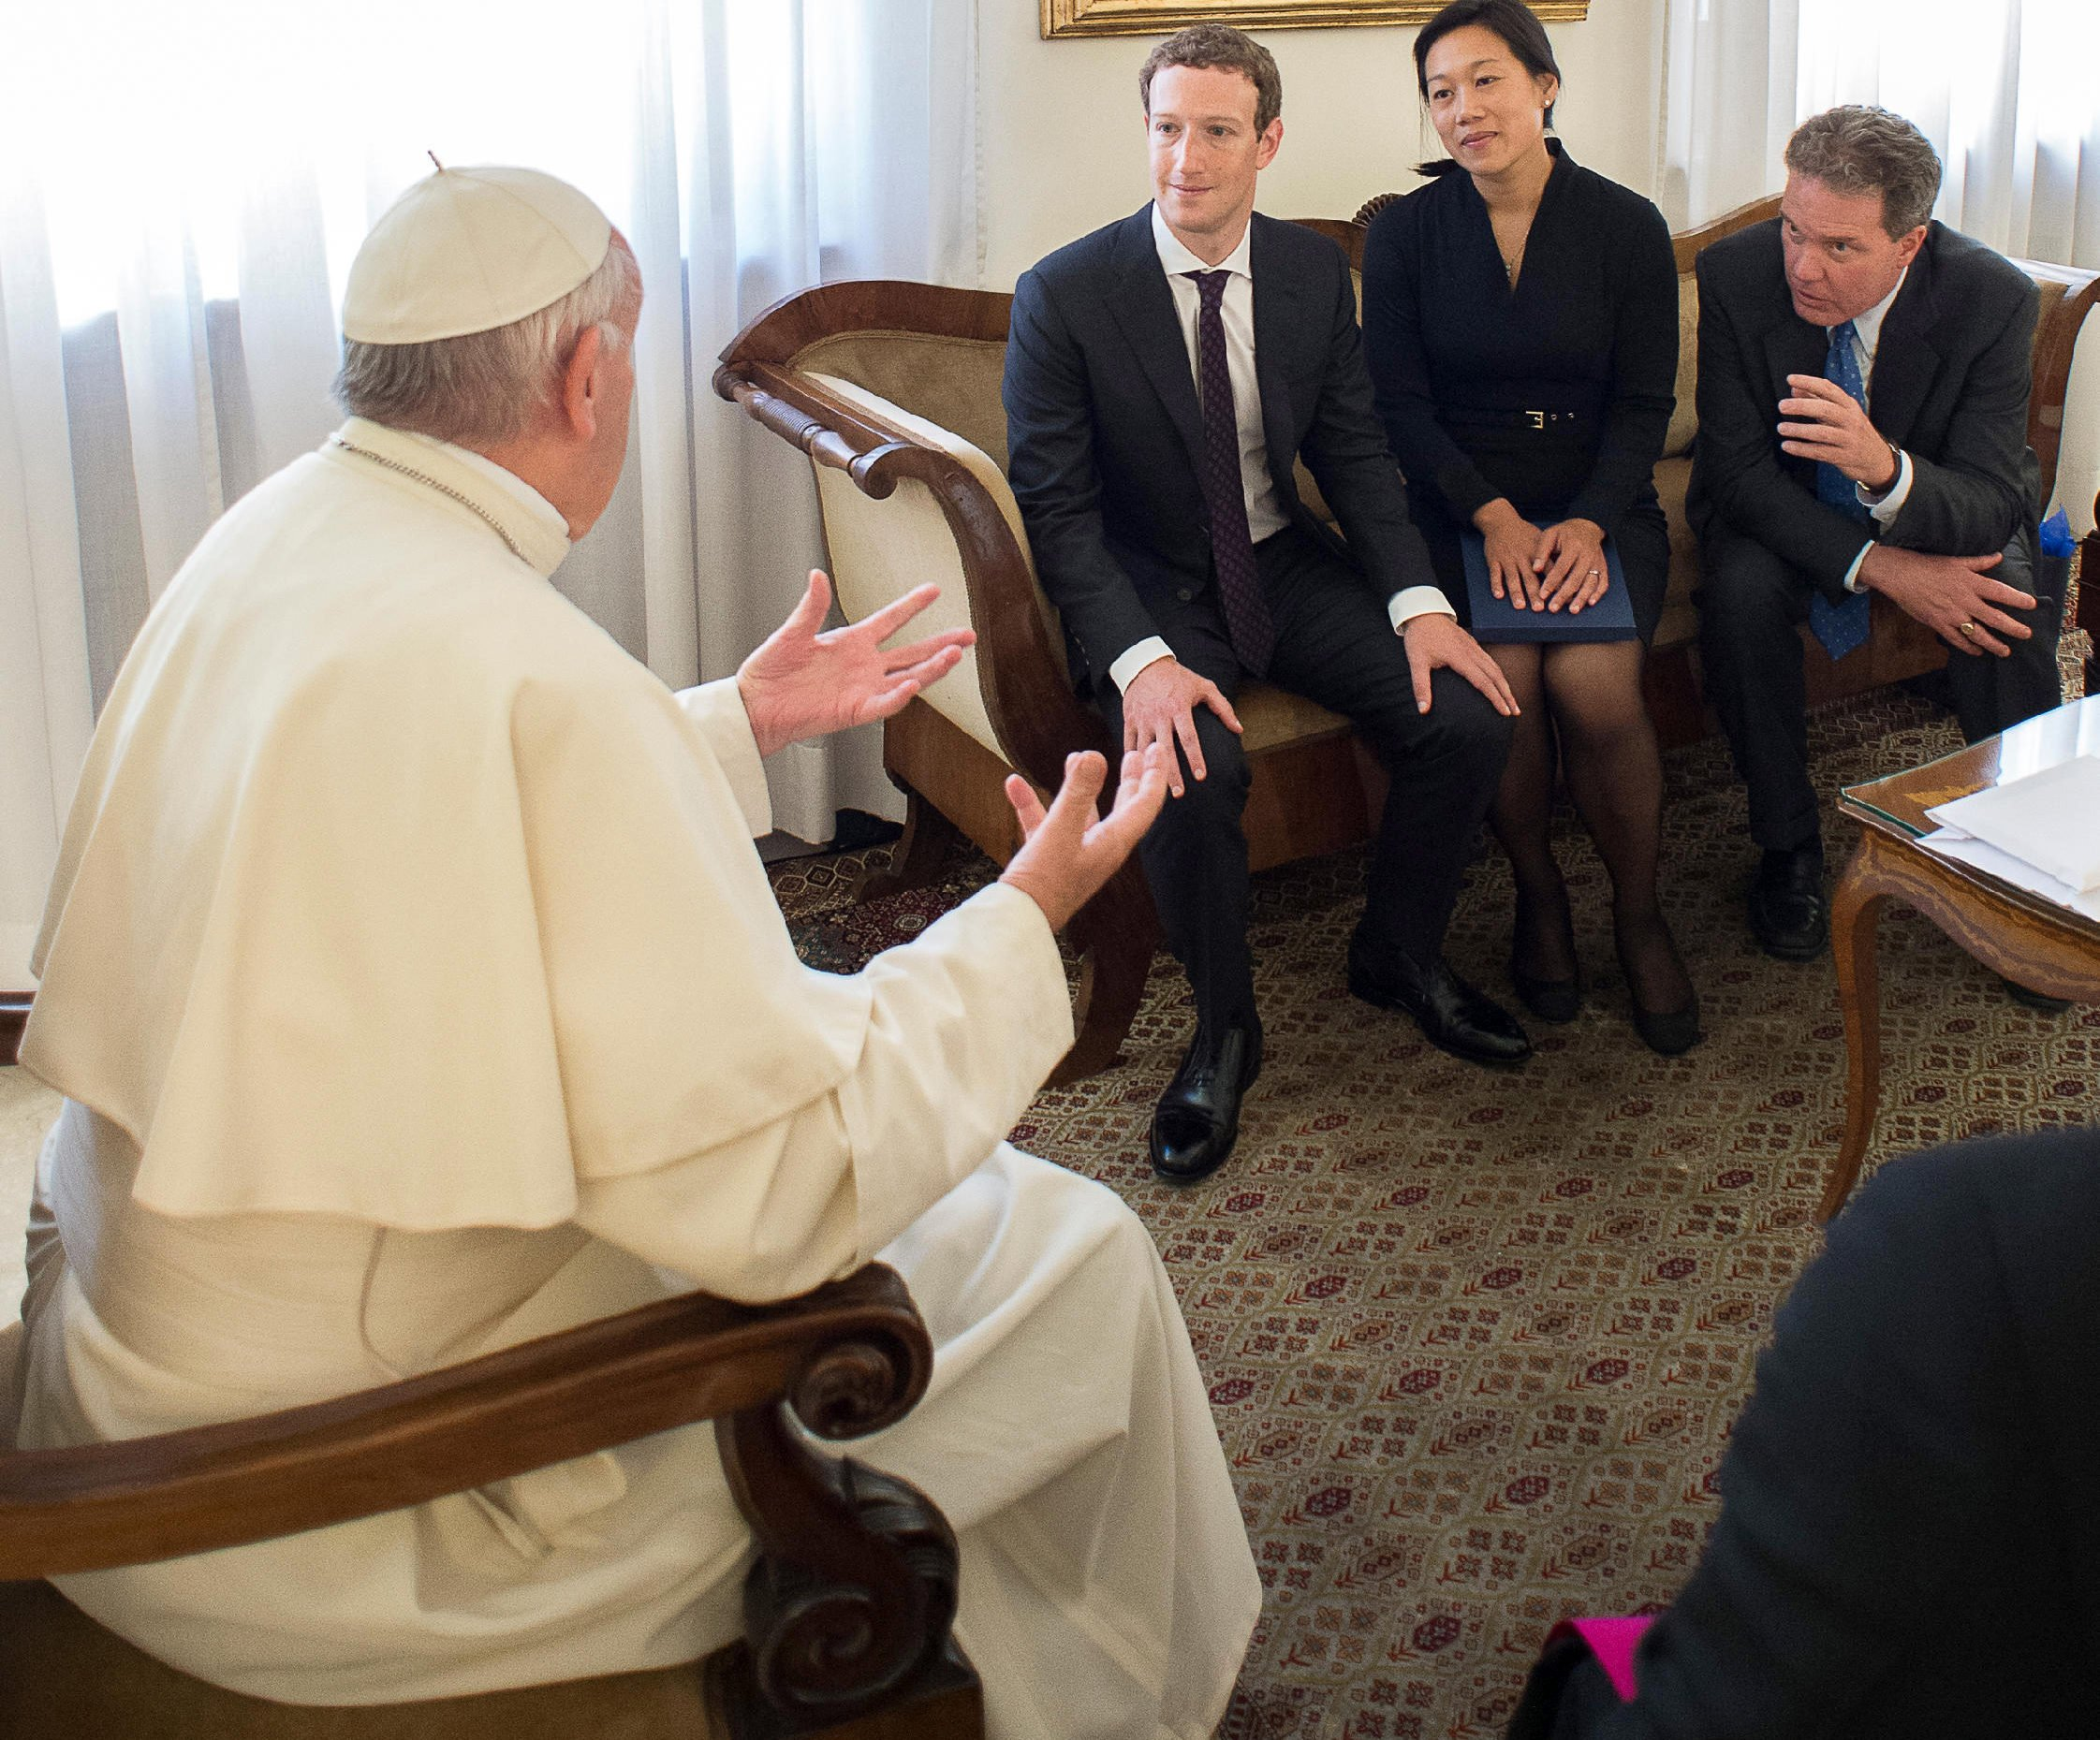 "Pope Francis meets Facebook founder and CEO Mark Zuckerberg, second from left, and his wife Priscilla Chan, at the Santa Marta residence, the guest house in Vatican City where the pope lives, Monday, Aug. 29, 2016. Vatican spokesman Greg Burke says a topic of discussion at Monday's meeting was ""how to use communication technologies to alleviate poverty, encourage a culture of encounter, and make a message of hope arrive, especially to those most in need.'' (L'Osservatore Romano/Pool Photo via AP)"